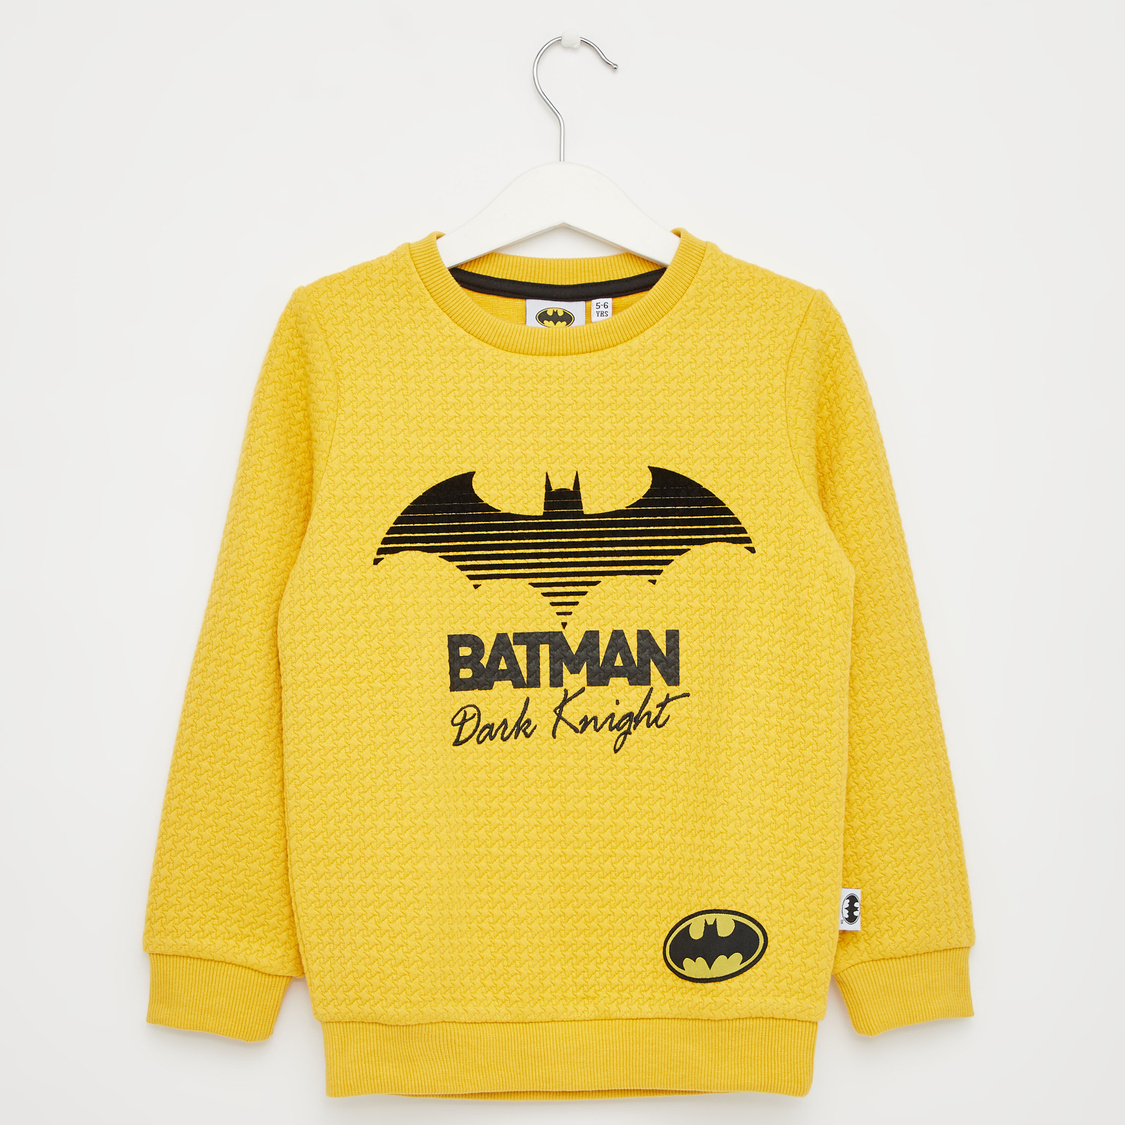 Textured Batman Print Sweat Top with Round Neck and Long Sleeves